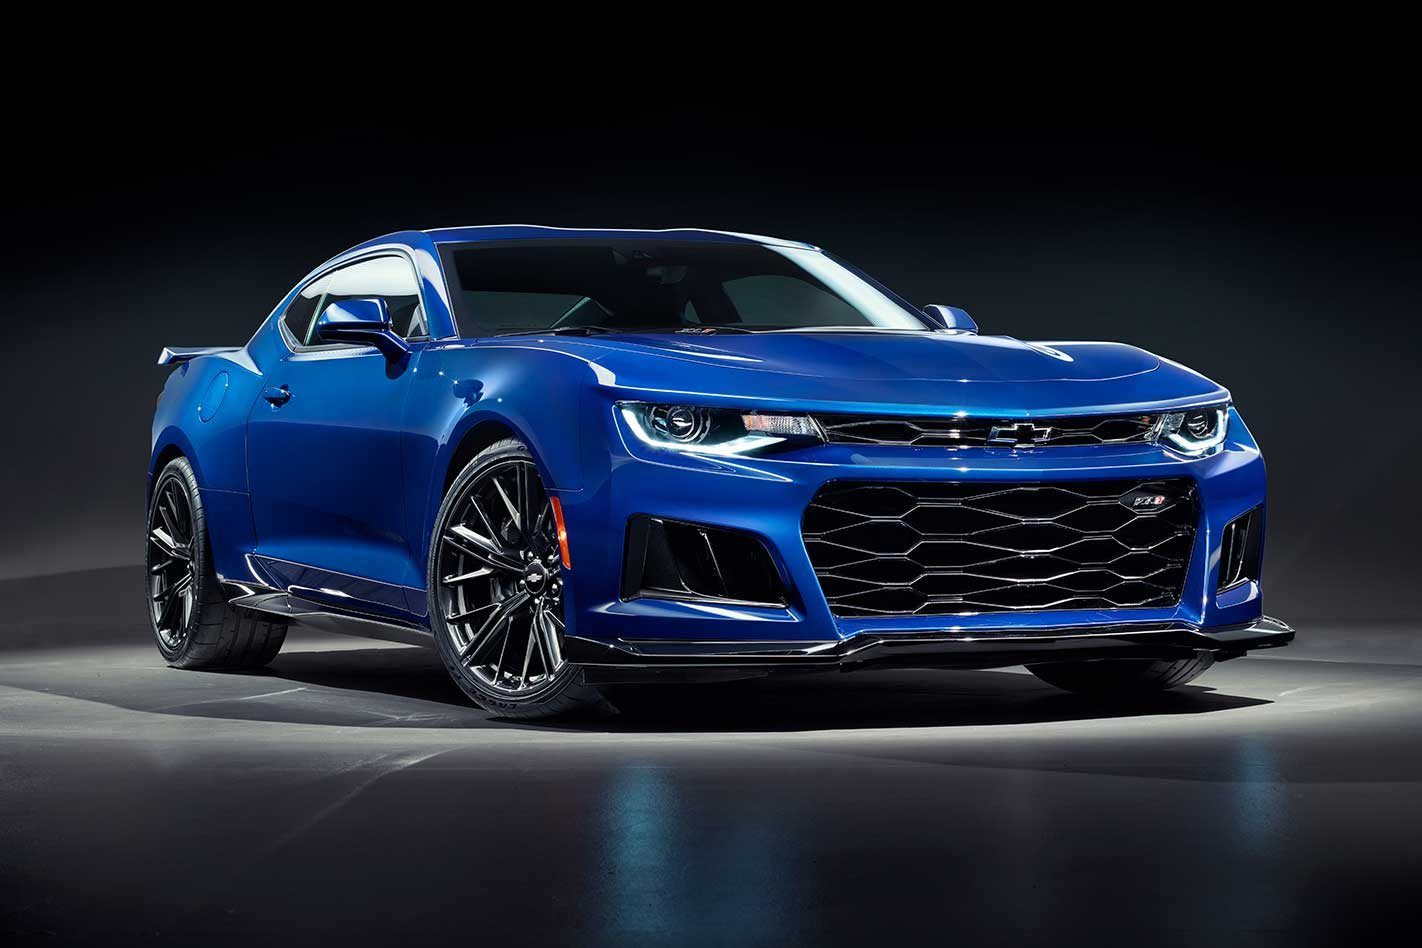 HSV reveals 2019 Chevrolet Camaro ZL1 for Australia